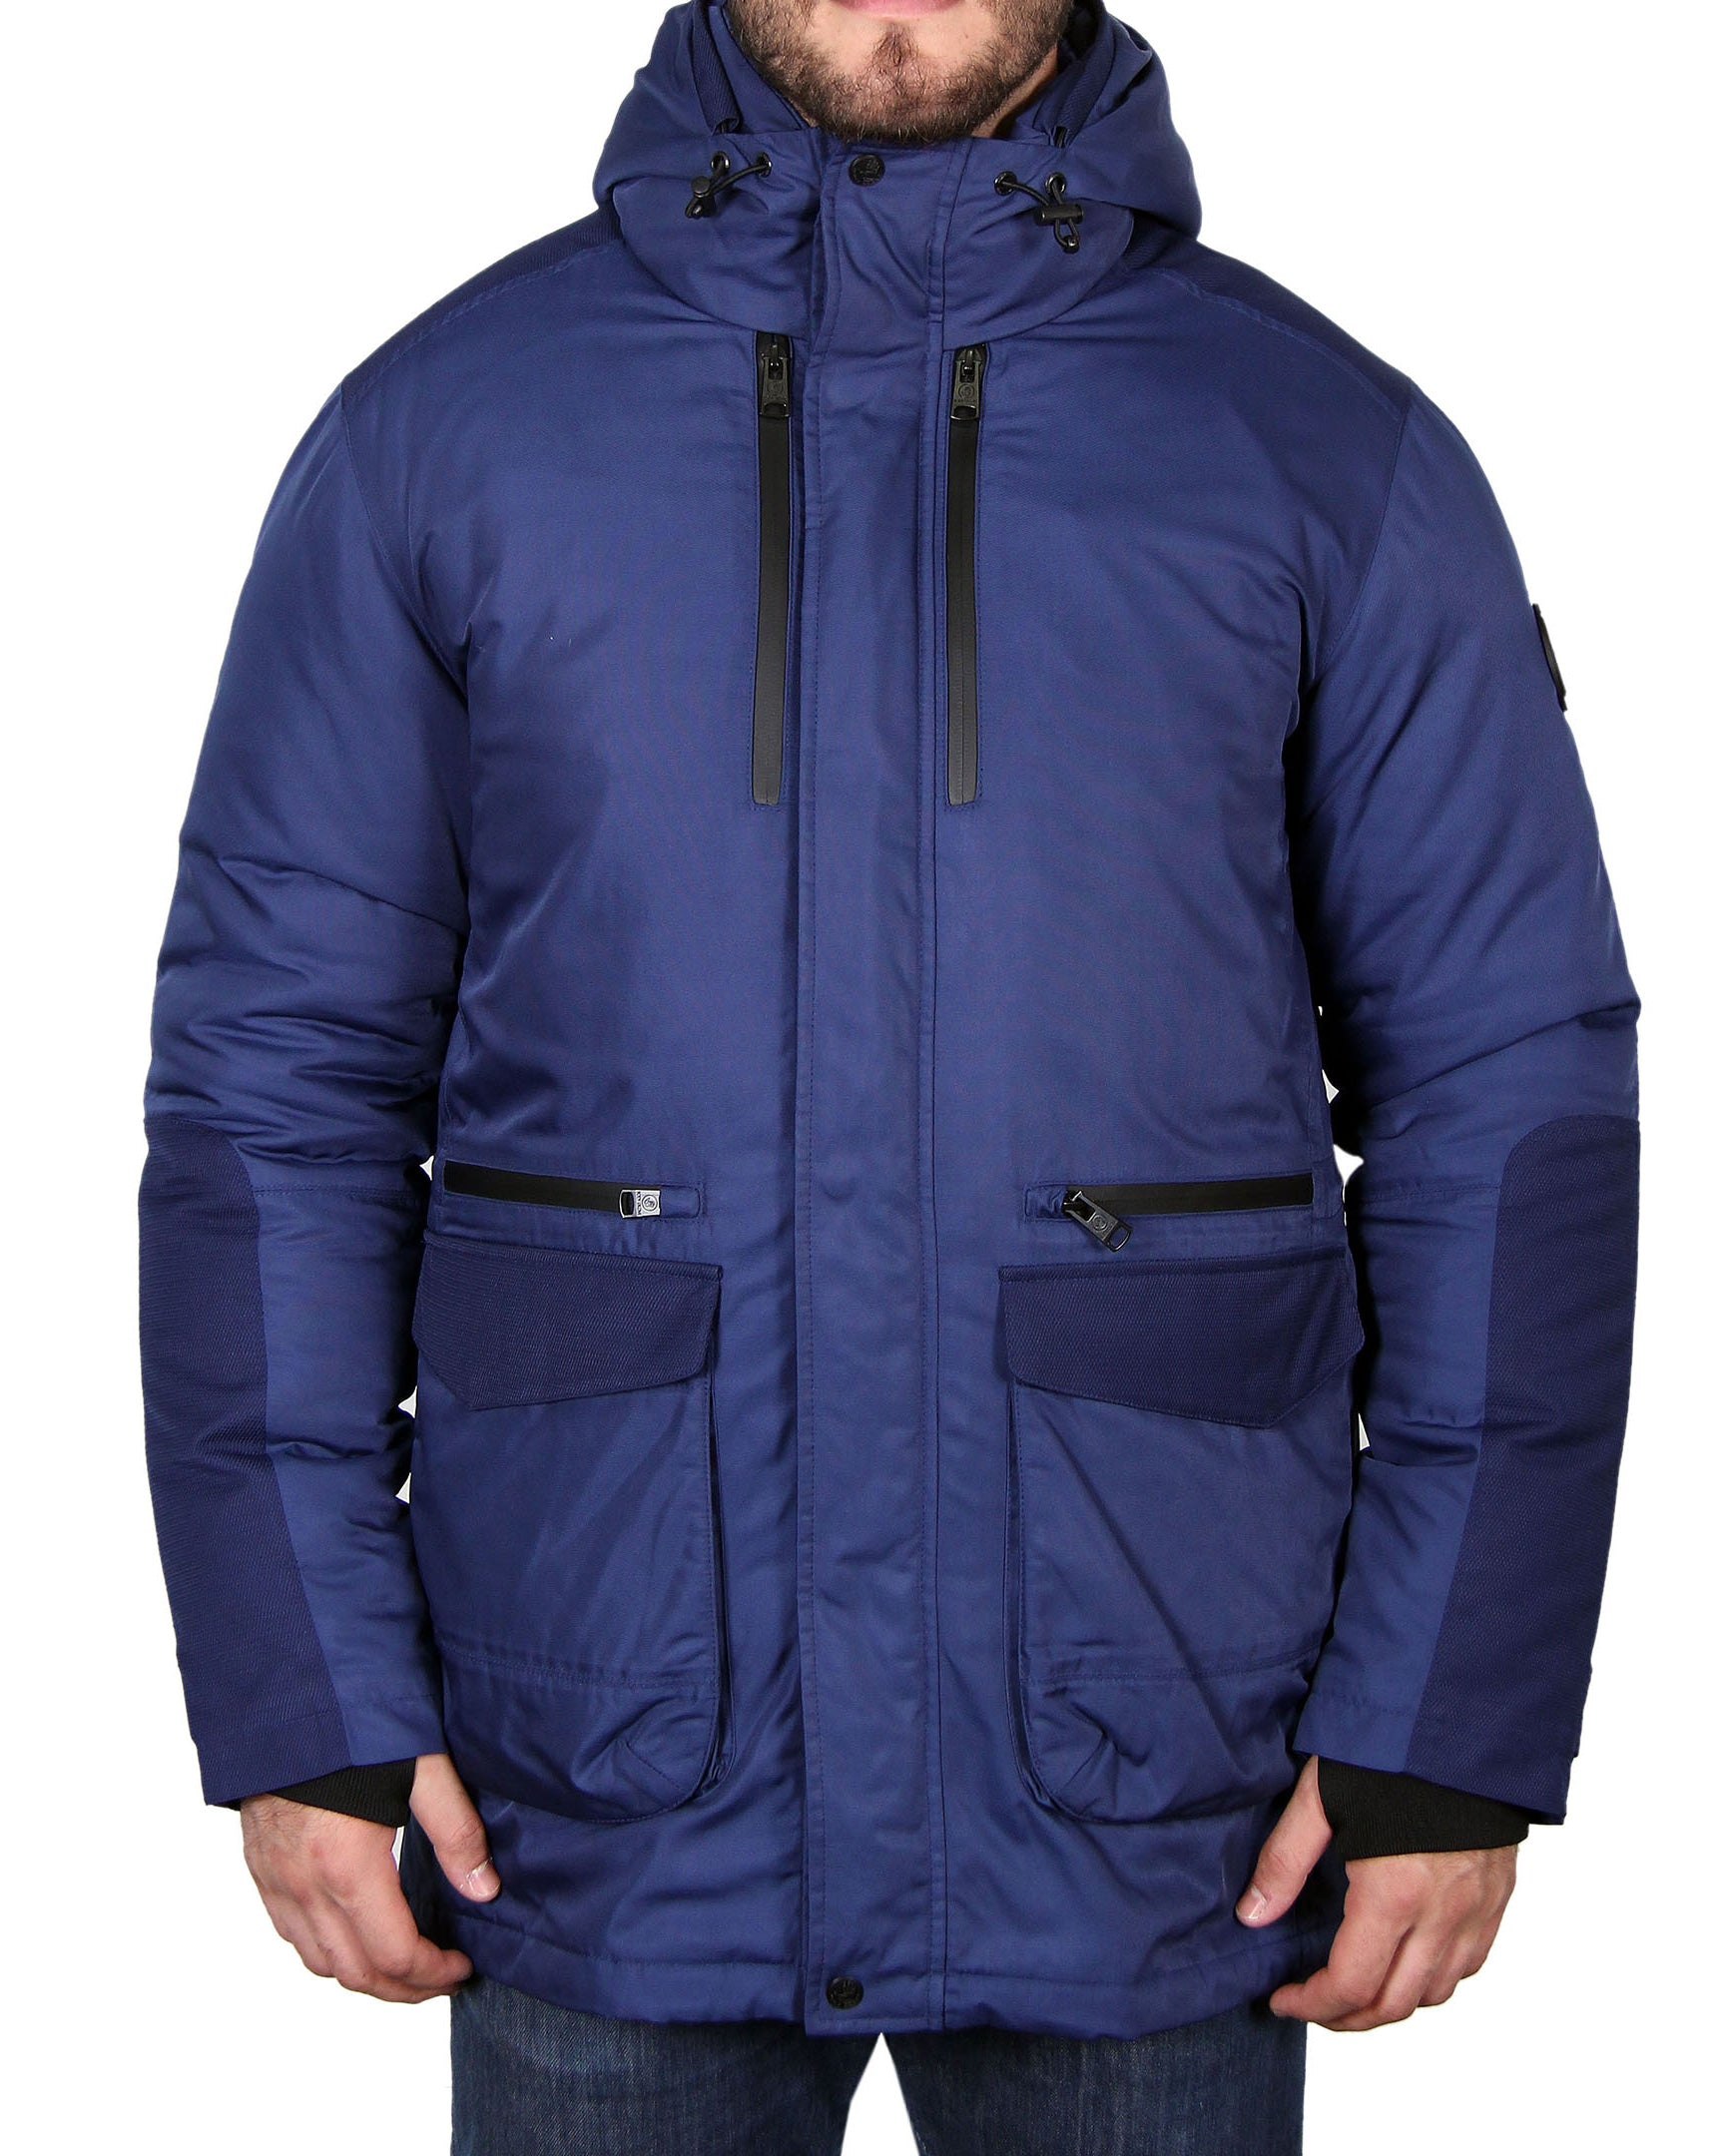 Parka Navy Blue Mens